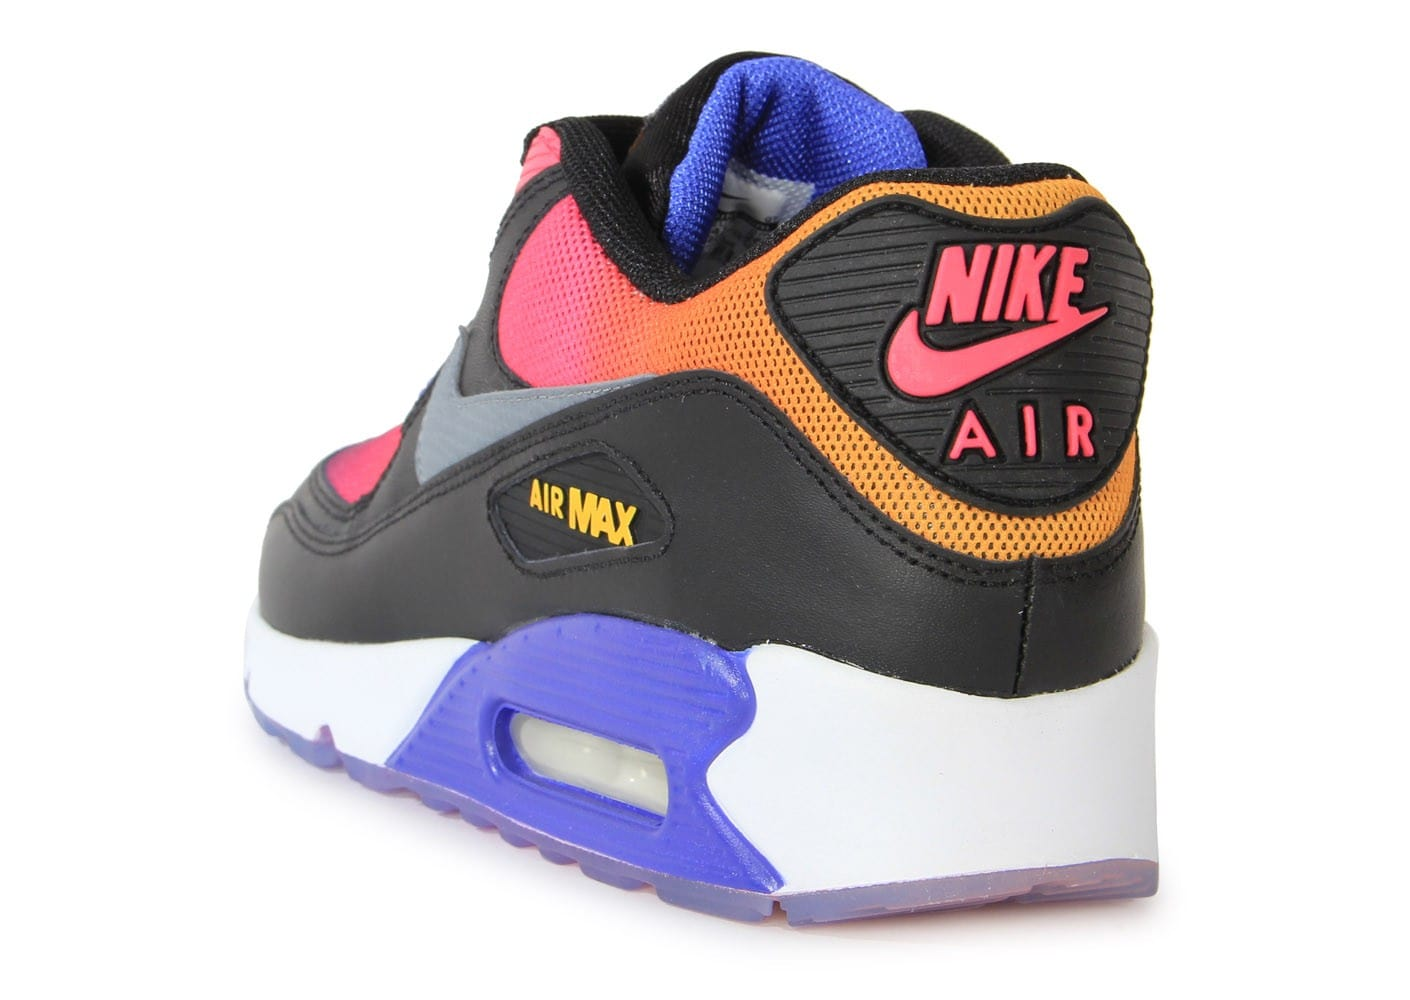 check out 7ee28 bfddd ... Chaussures Nike Air Max 90 Sd Sunset vue arrière ...